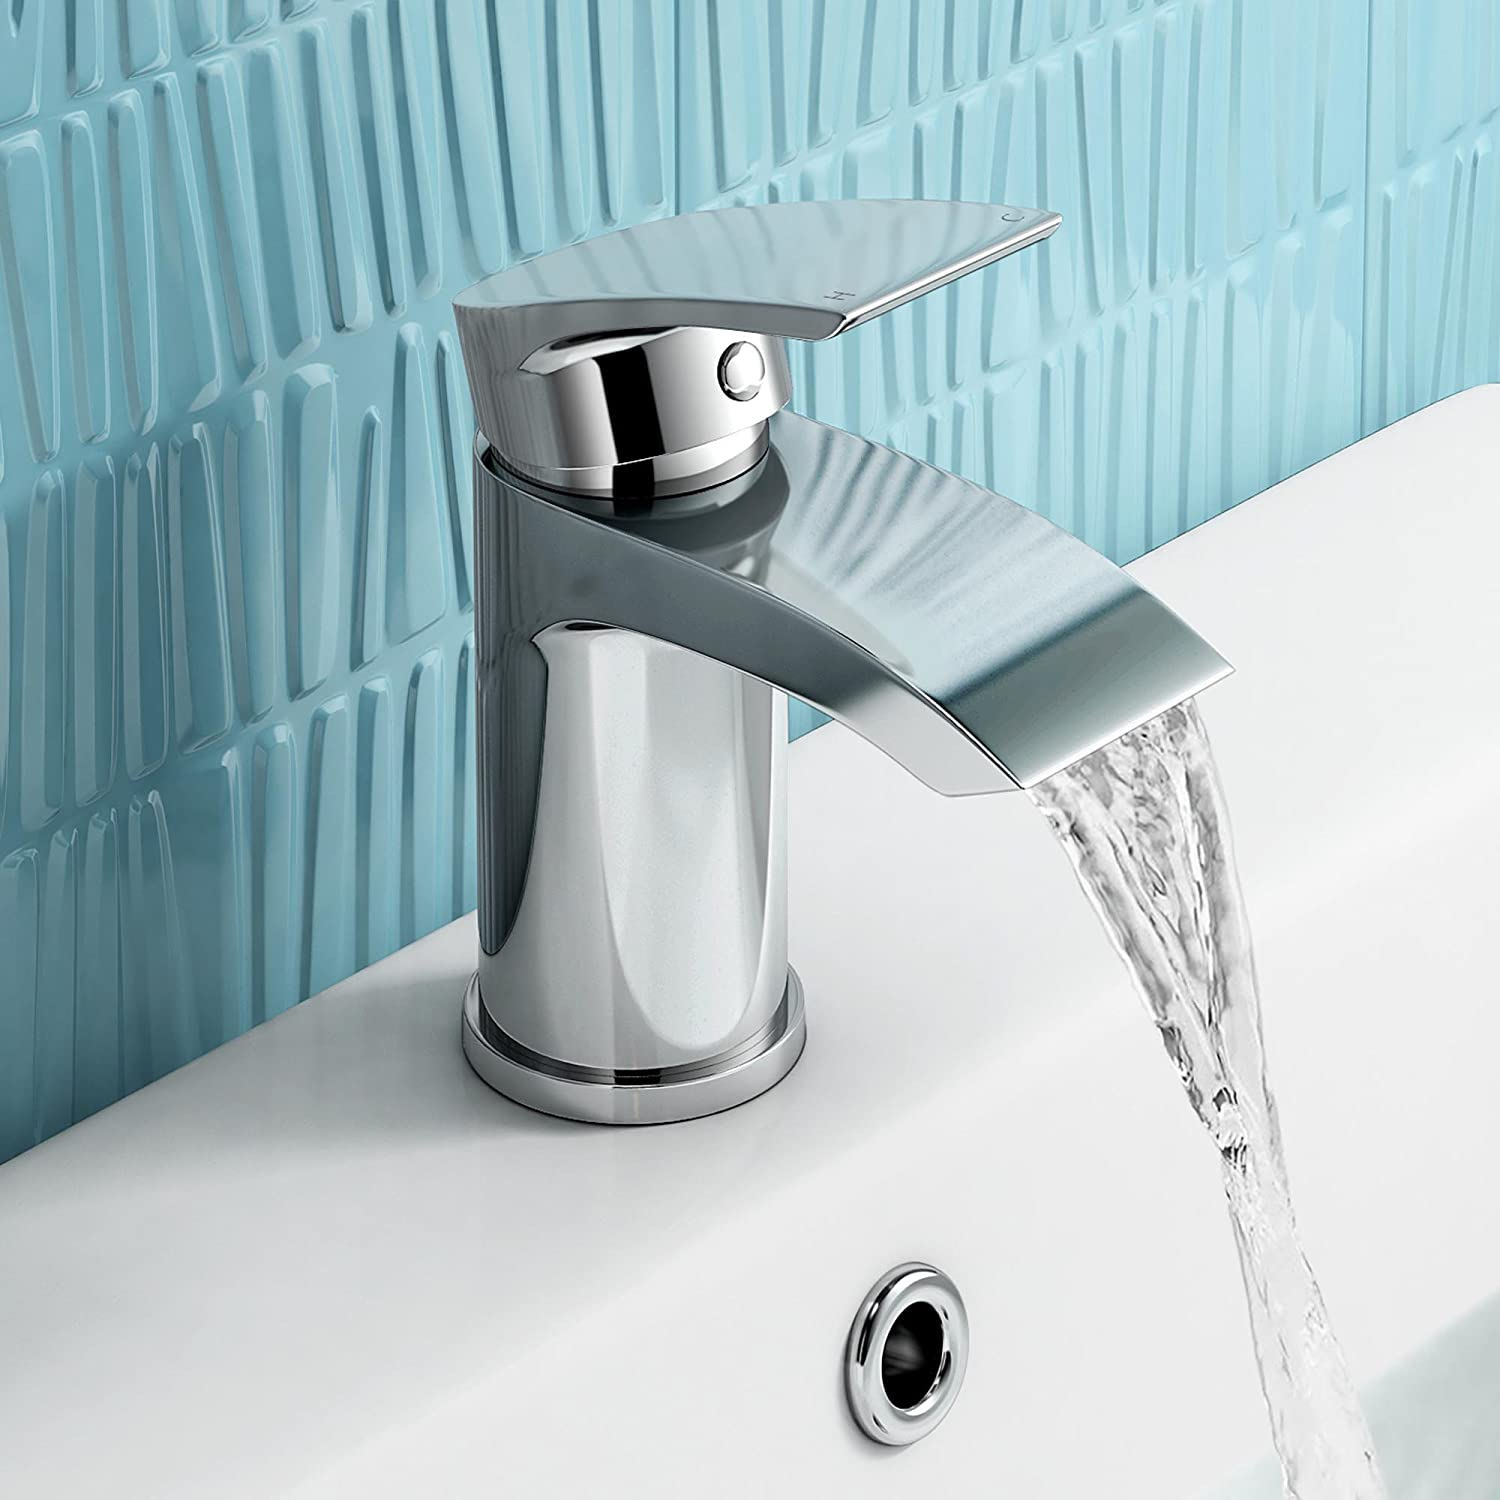 iBathUK | Cloakroom Basin Sink Mixer Tap + Bath Filler Bathroom ...